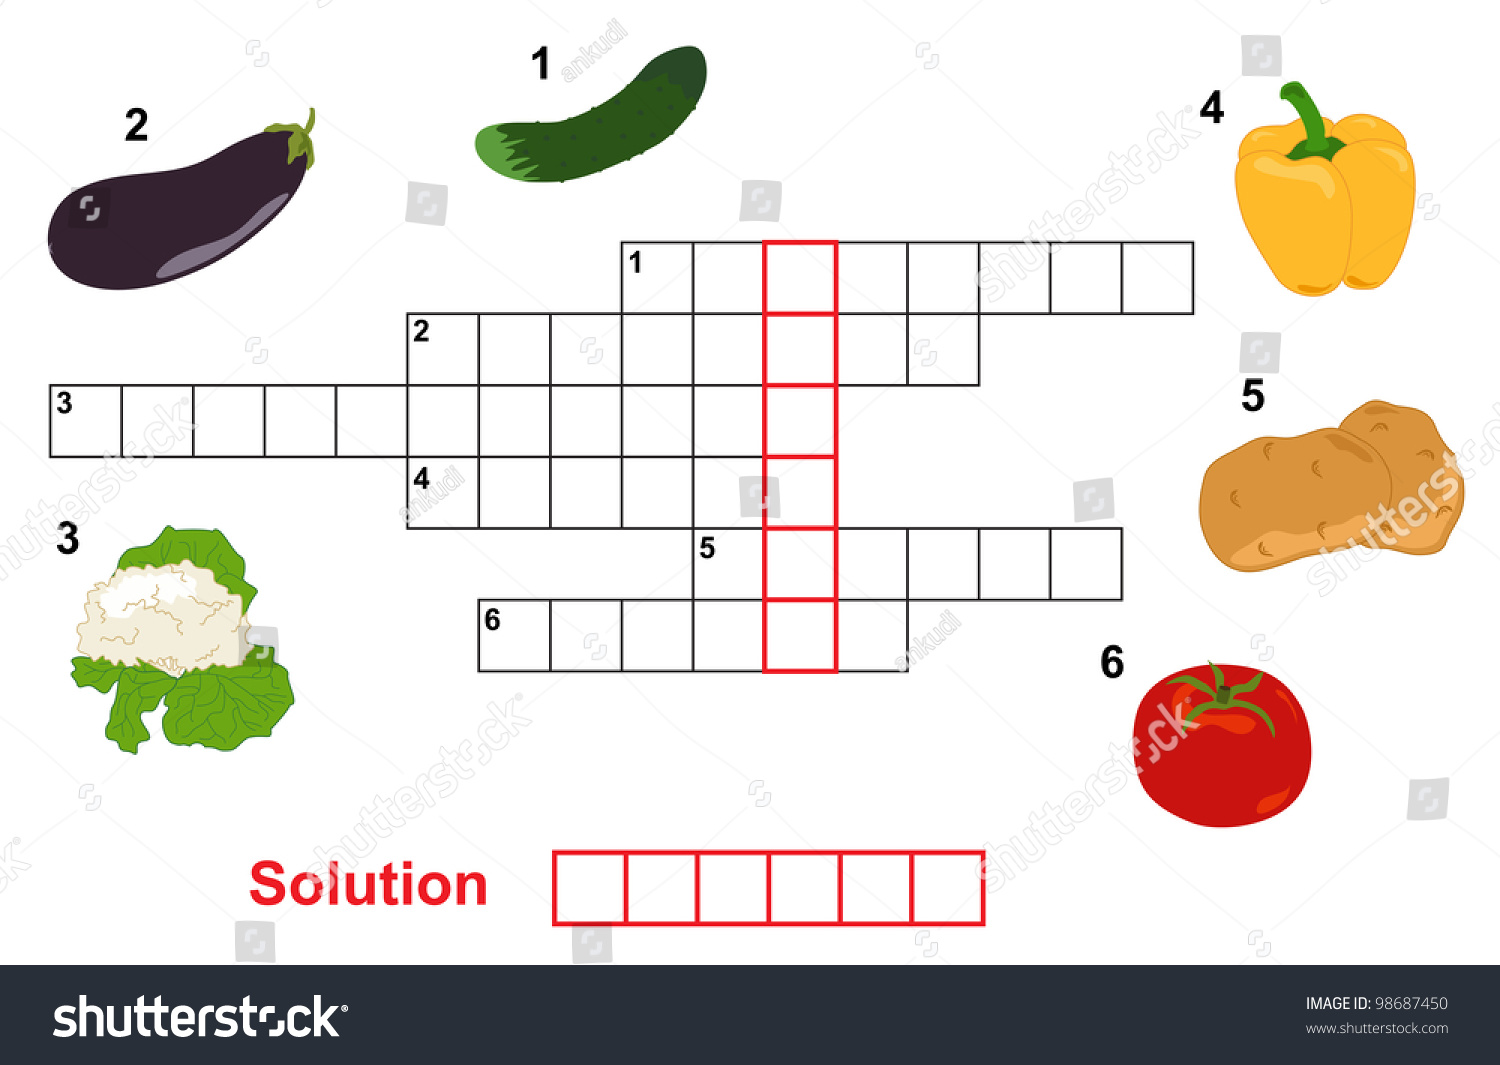 Game with shapes of different colors crossword - Vegetable Puzzle Crossword Words Game For Children